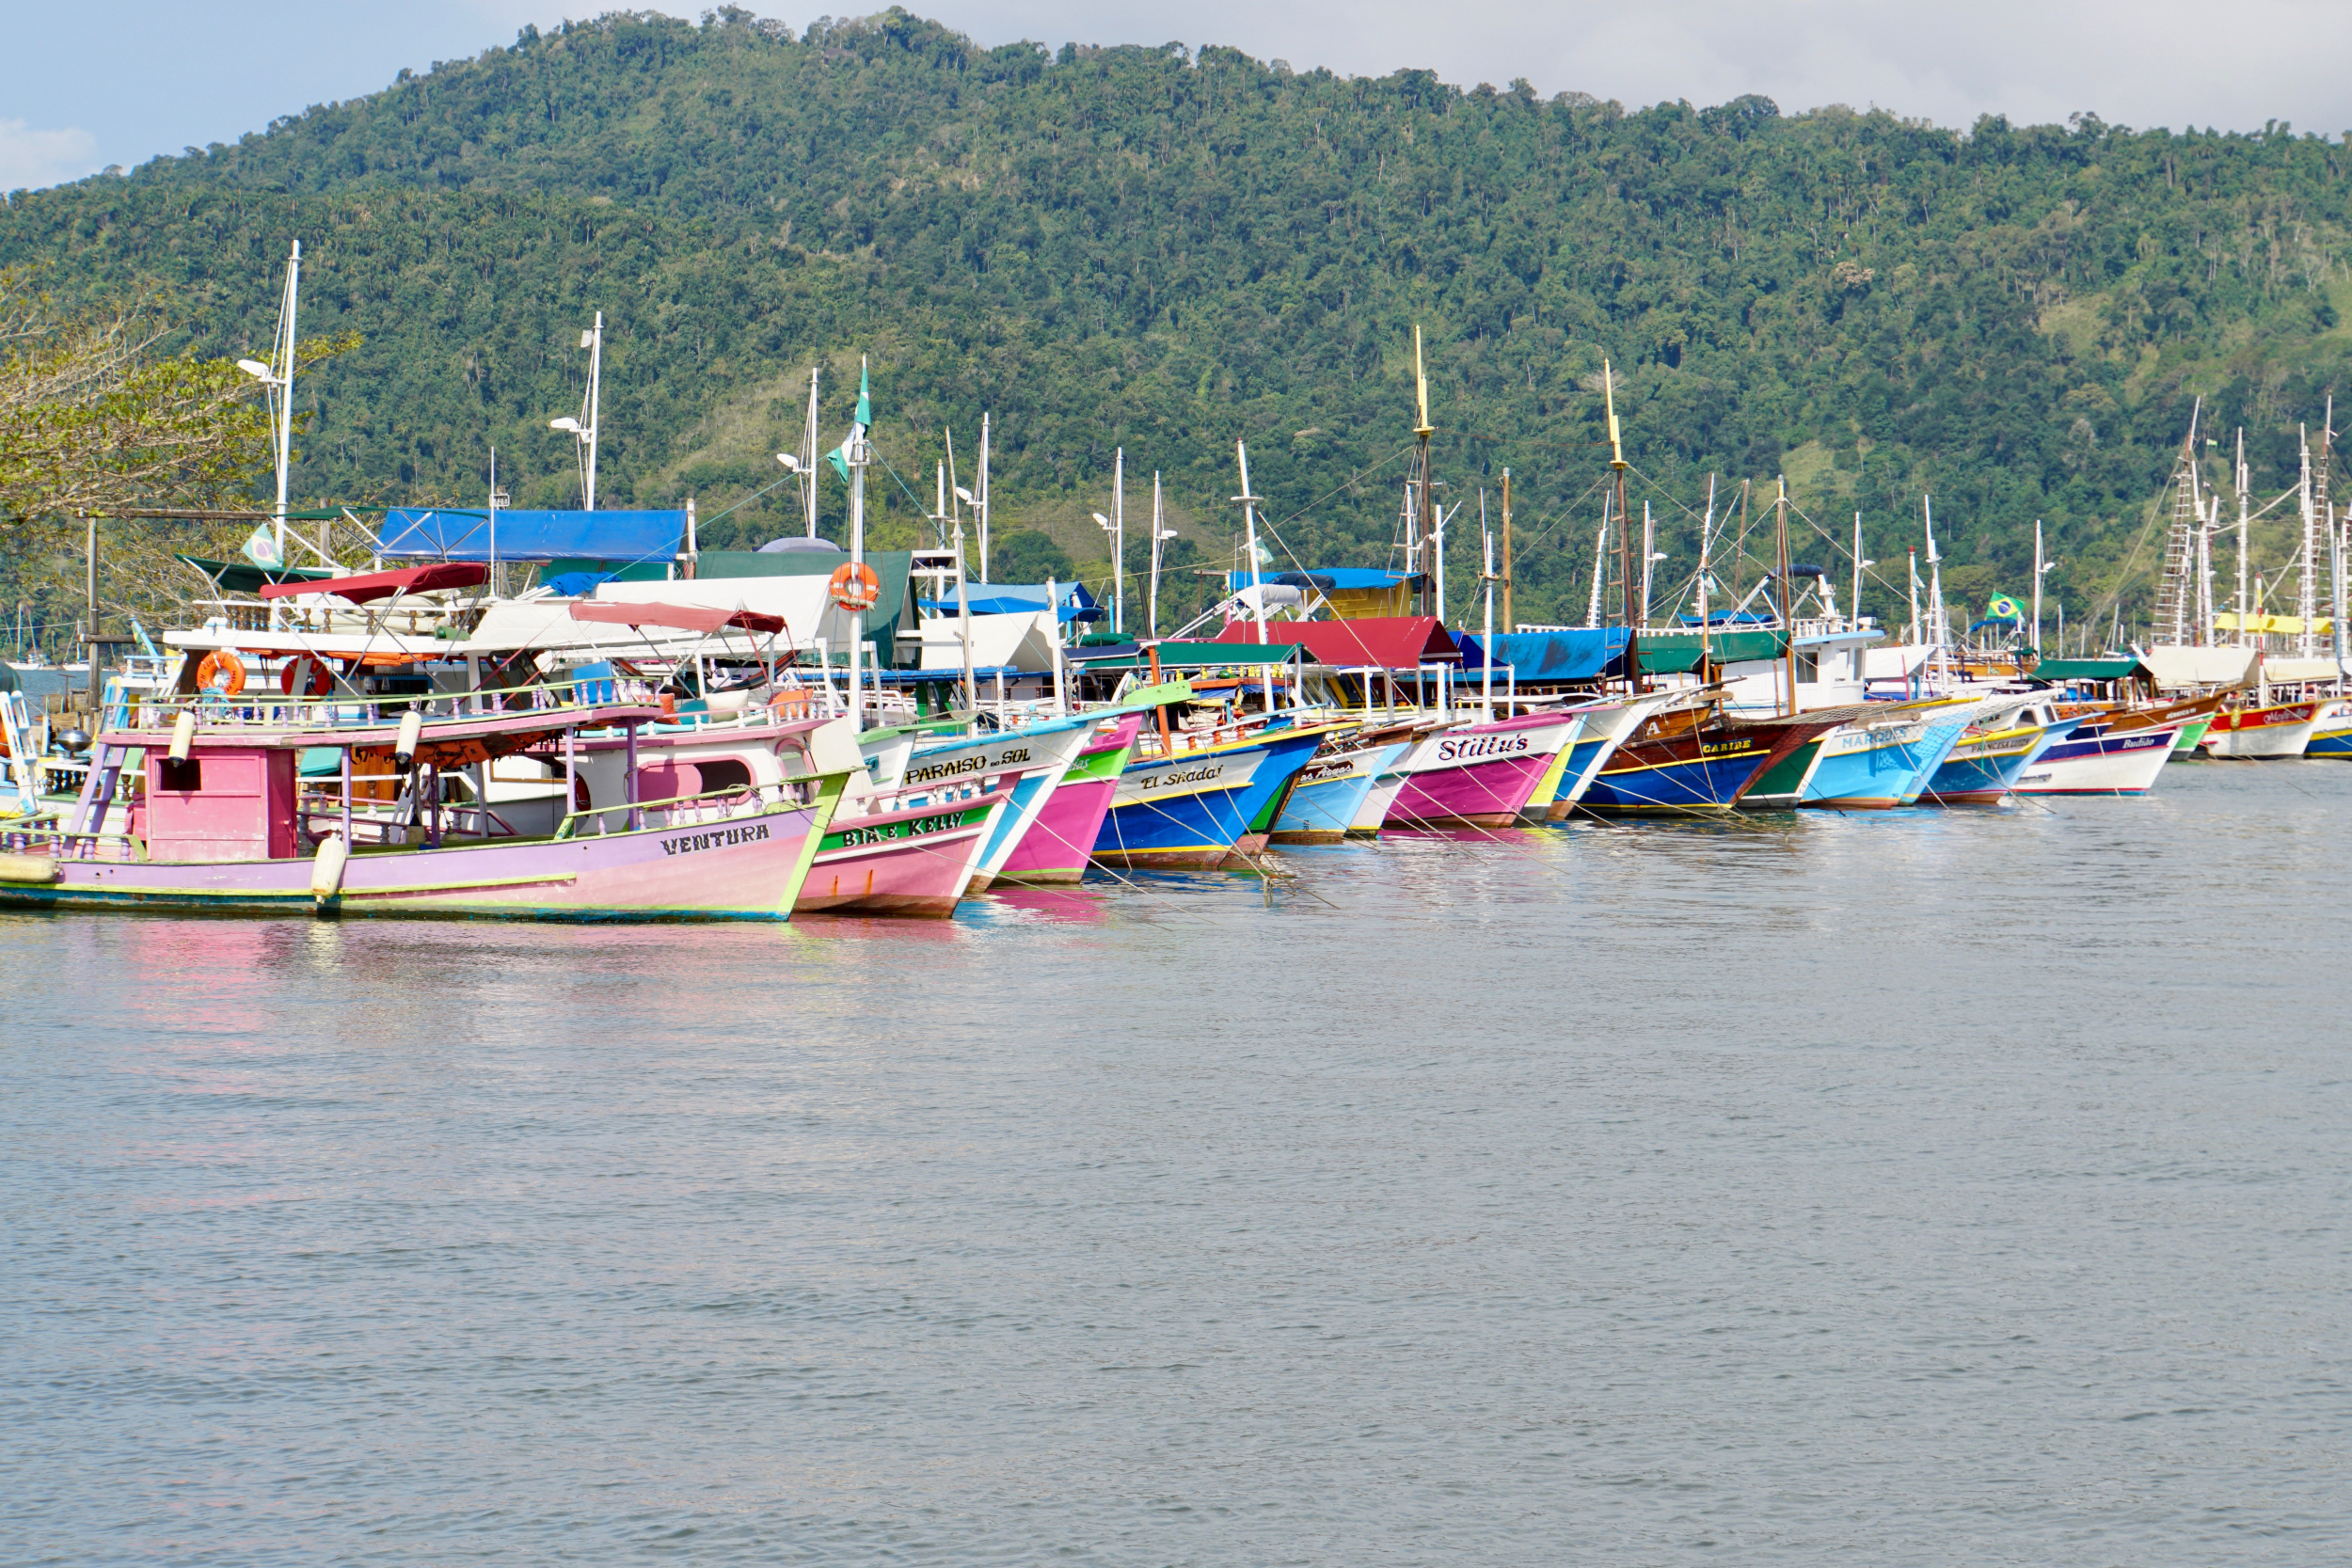 37. Boats in Paraty